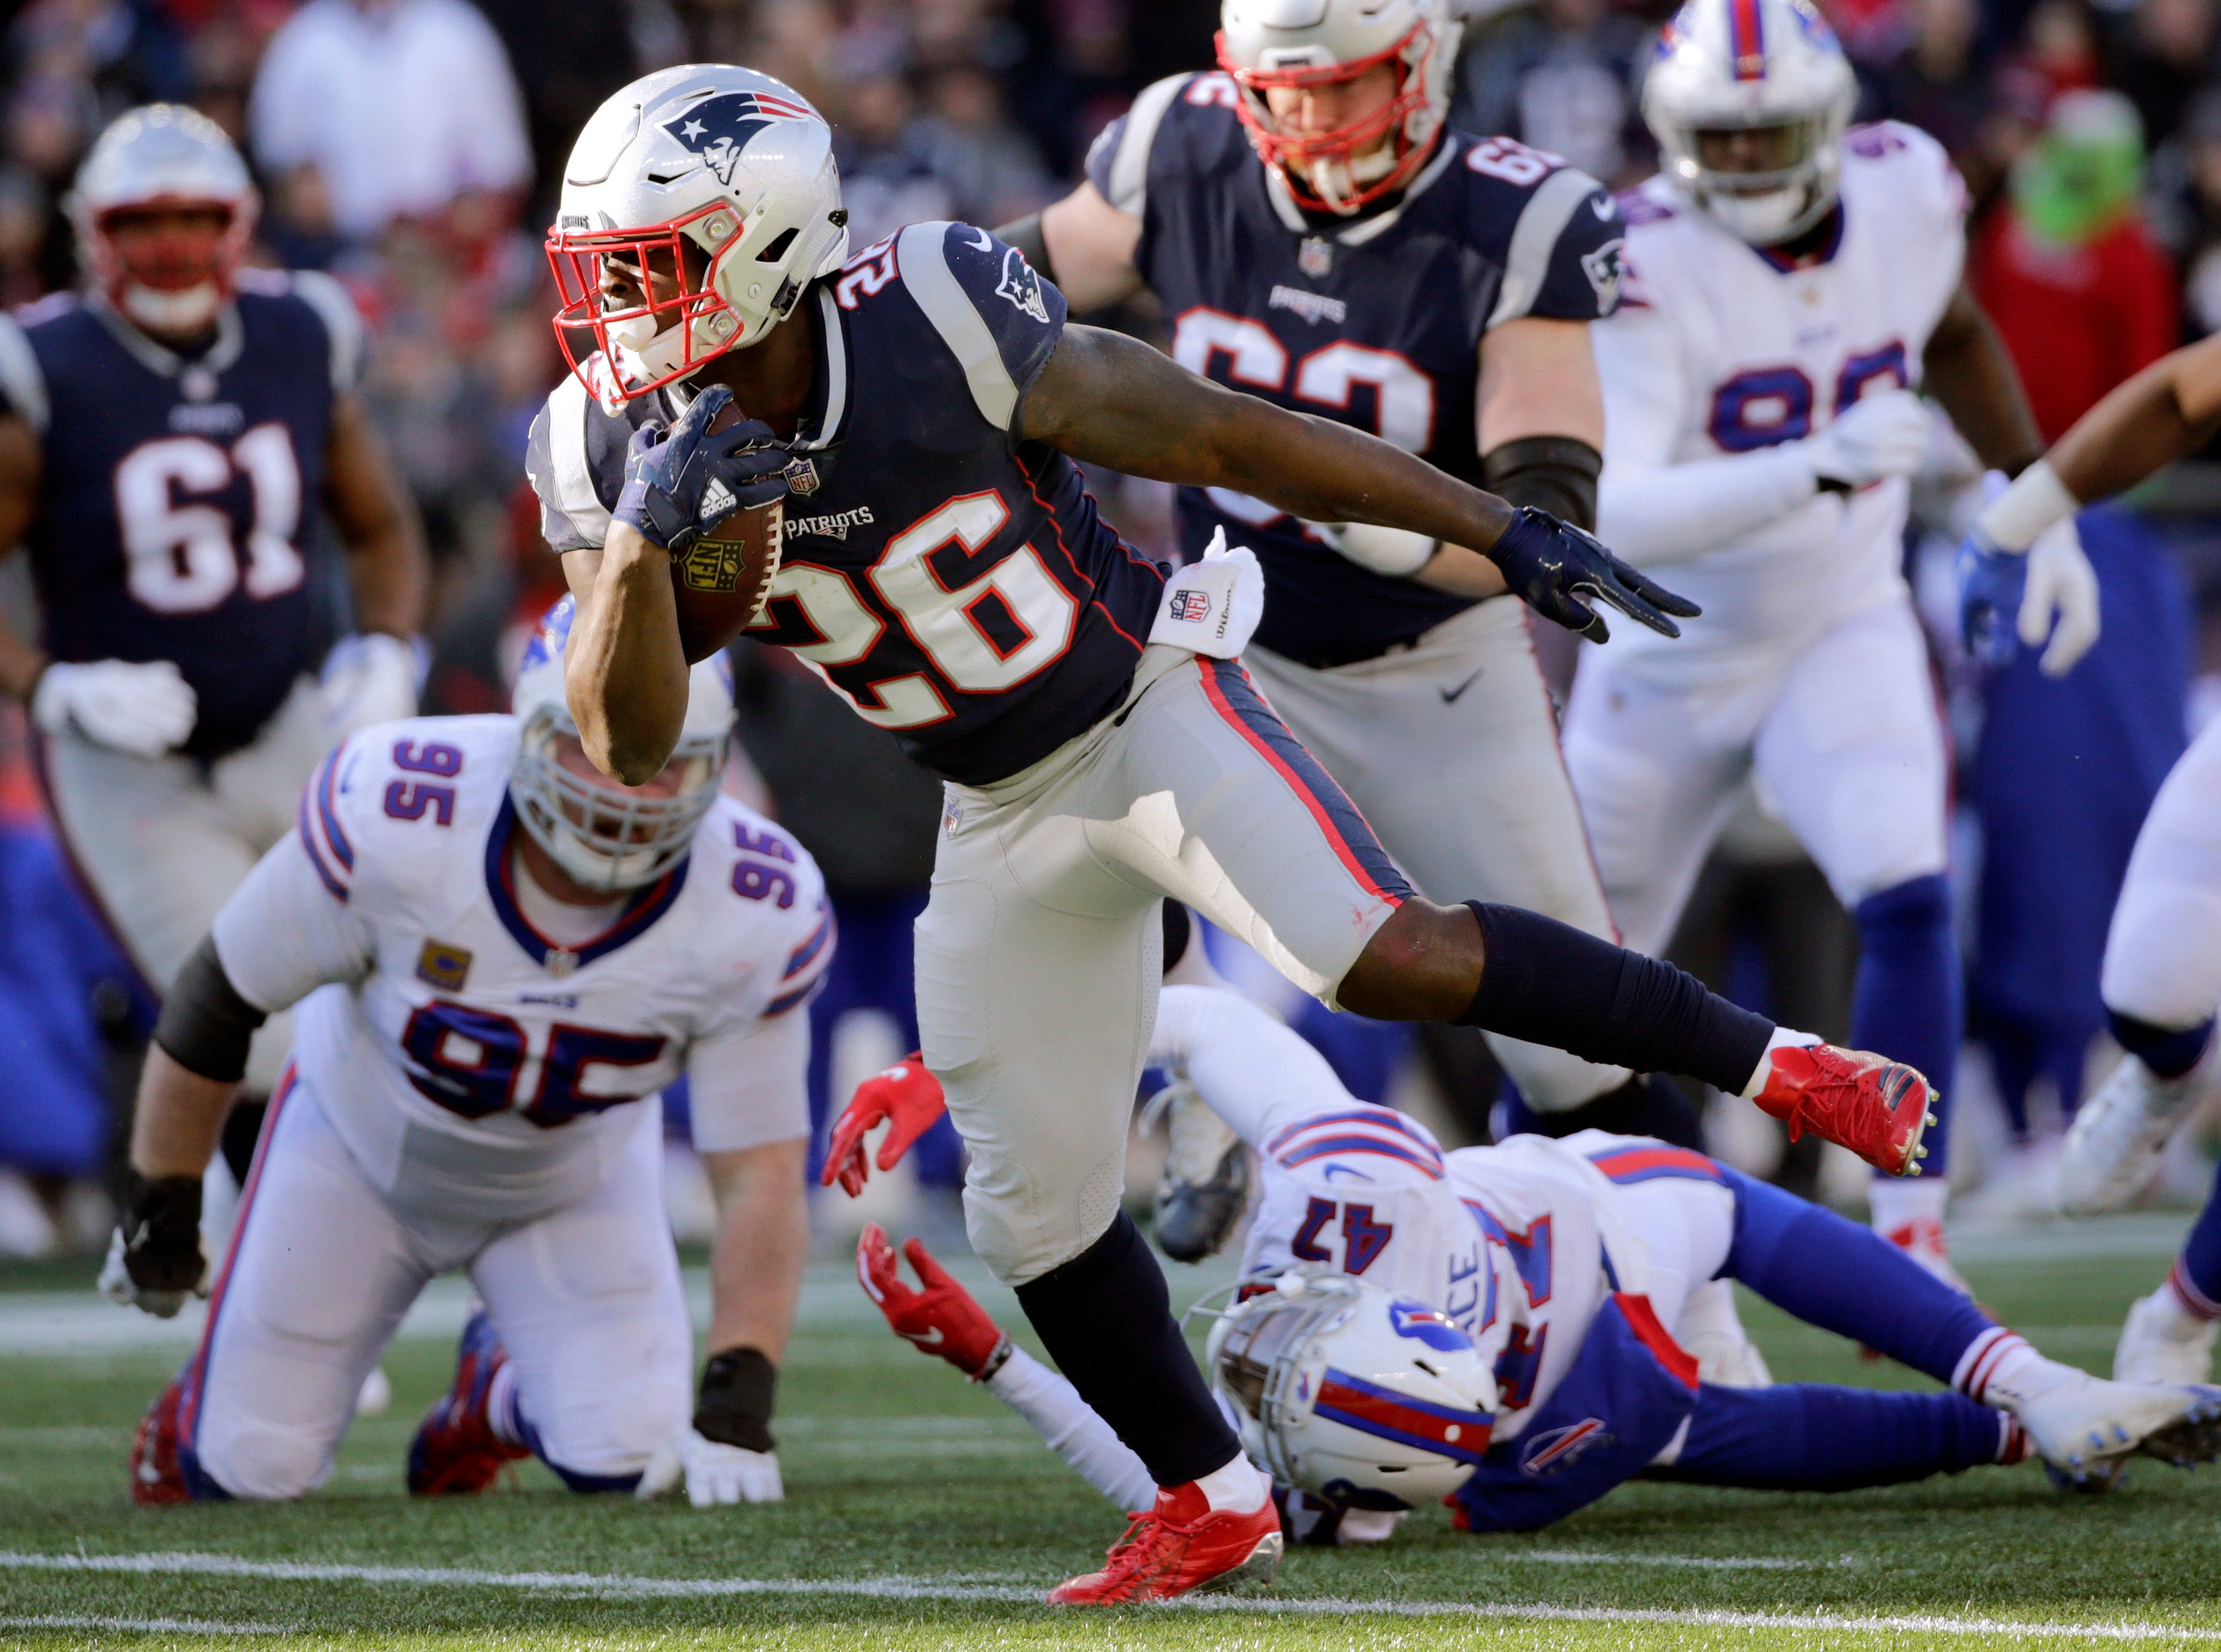 New England Patriots running back Sony Michel runs from Buffalo Bills defenders Kyle Williams (95) and Levi Wallace (47) during the first half of an NFL football game, Sunday, Dec. 23, 2018, in Foxborough, Mass. (AP Photo/Elise Amendola)